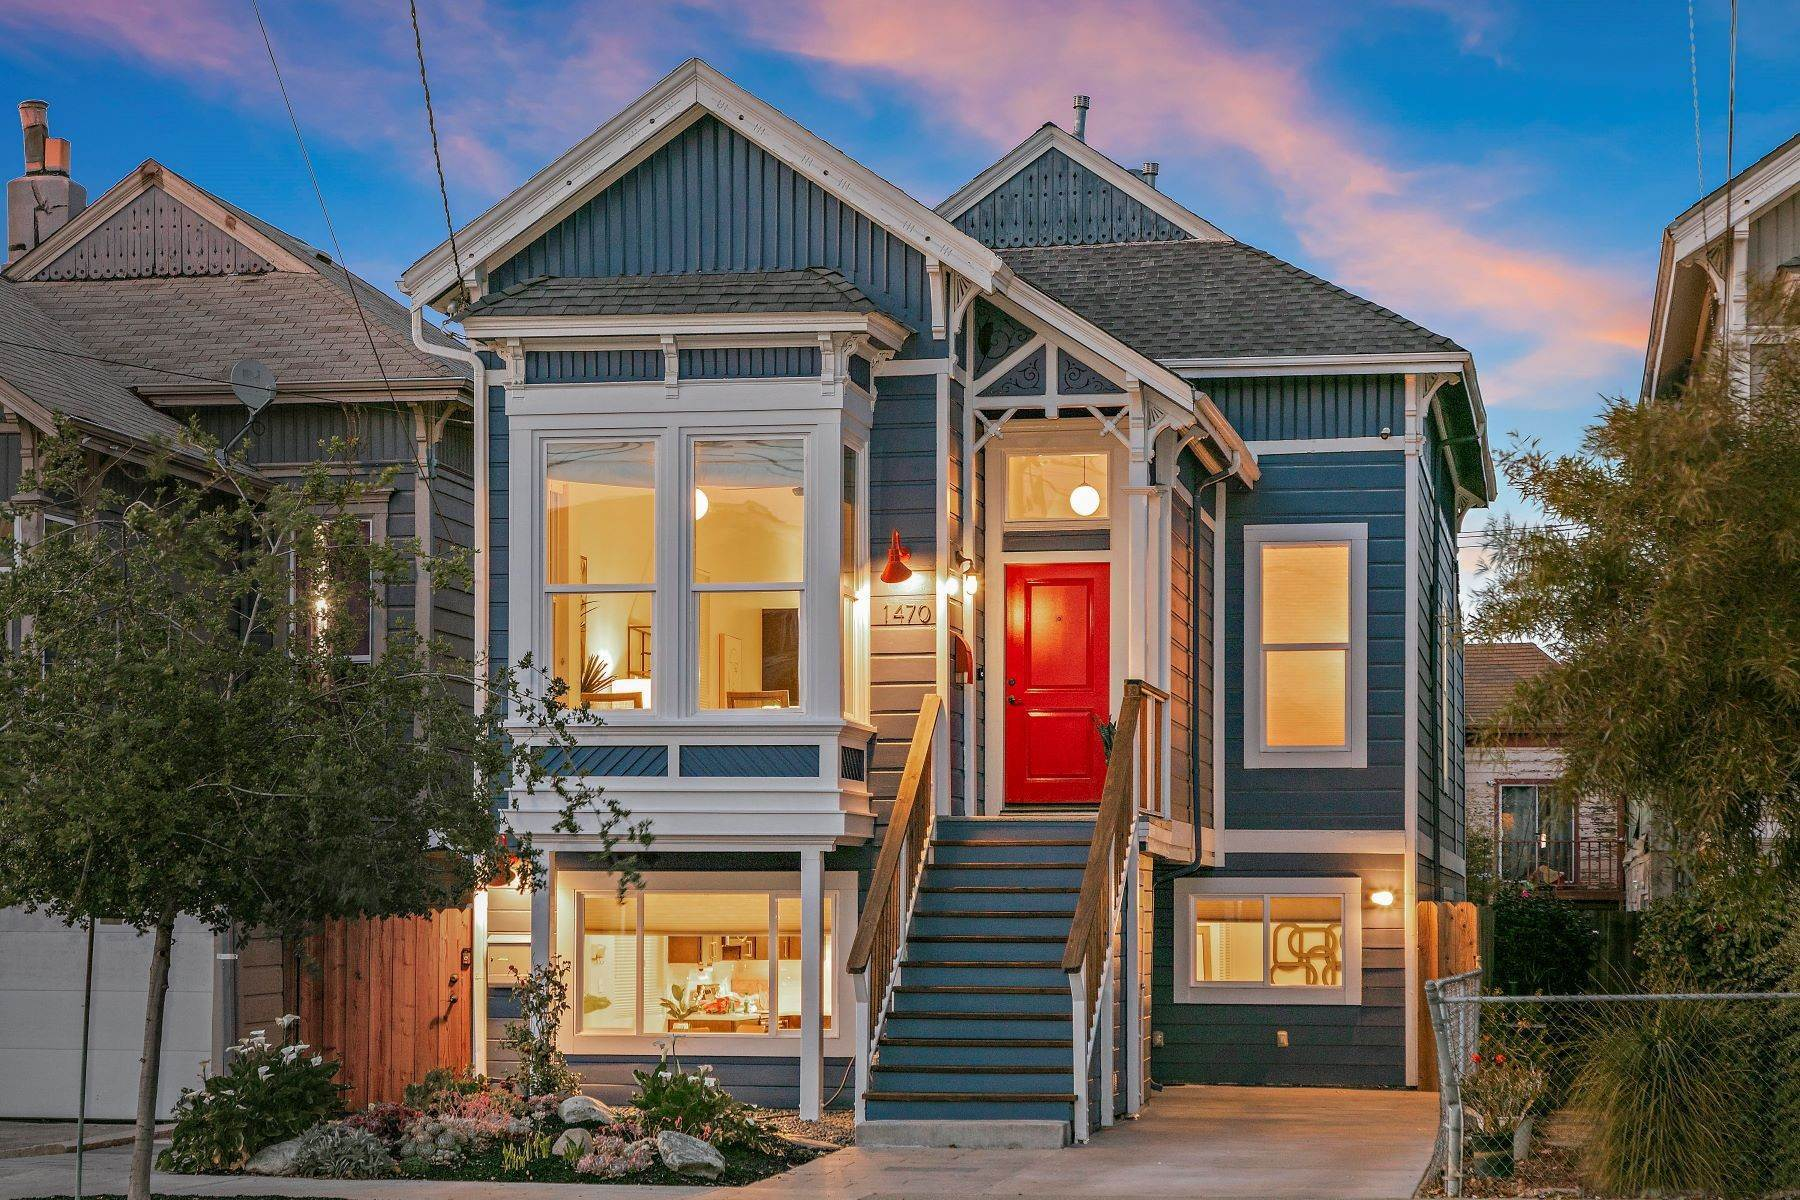 Duplex Homes 为 销售 在 'The Blue House' - Eastlake Style Victorian 1470 12th Street 奥克兰, 加利福尼亚州 94607 美国